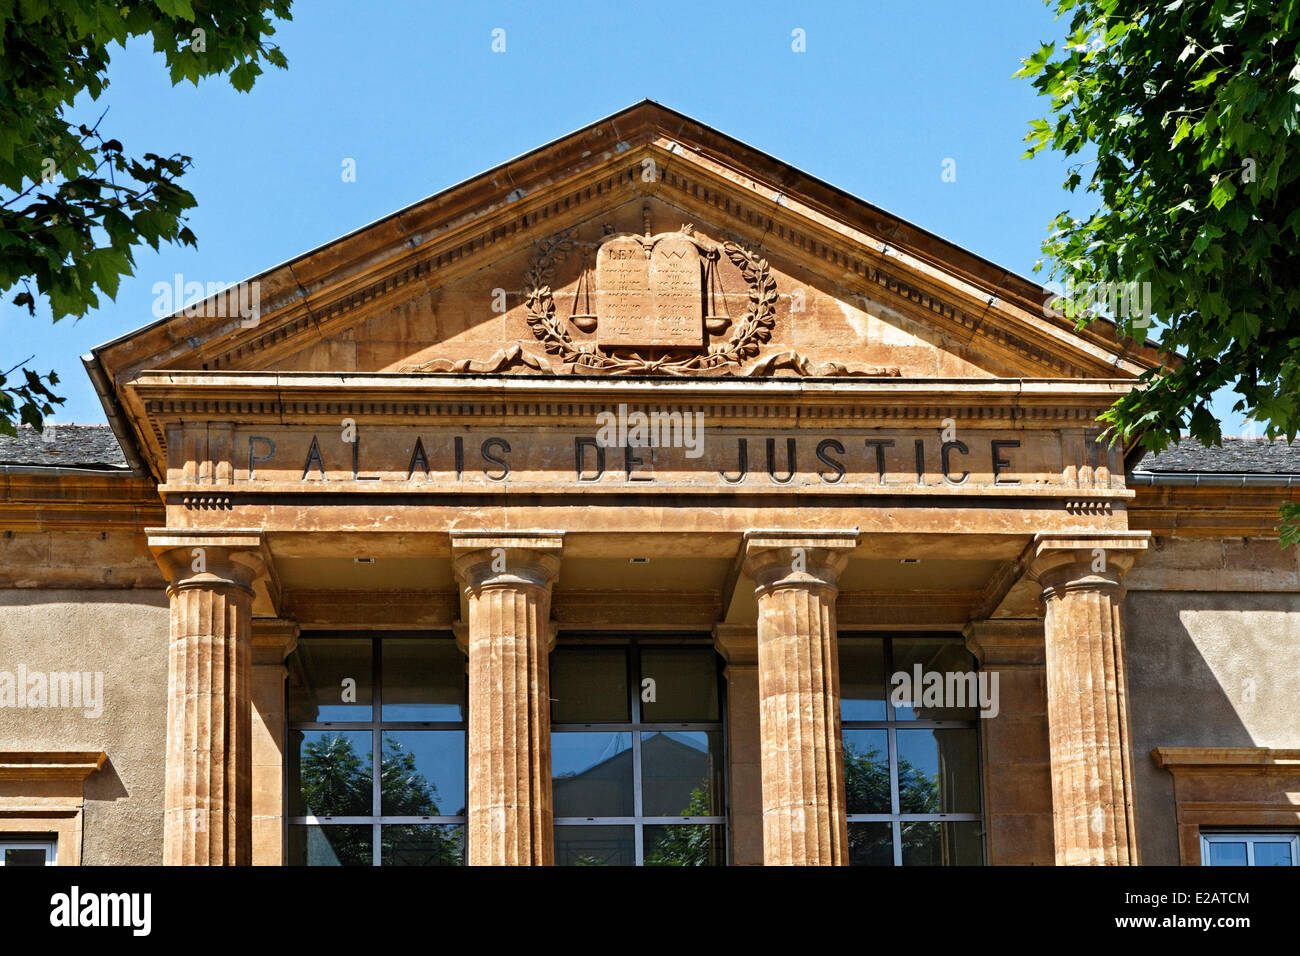 France, Lozere, Mende, courthouse - Stock Image